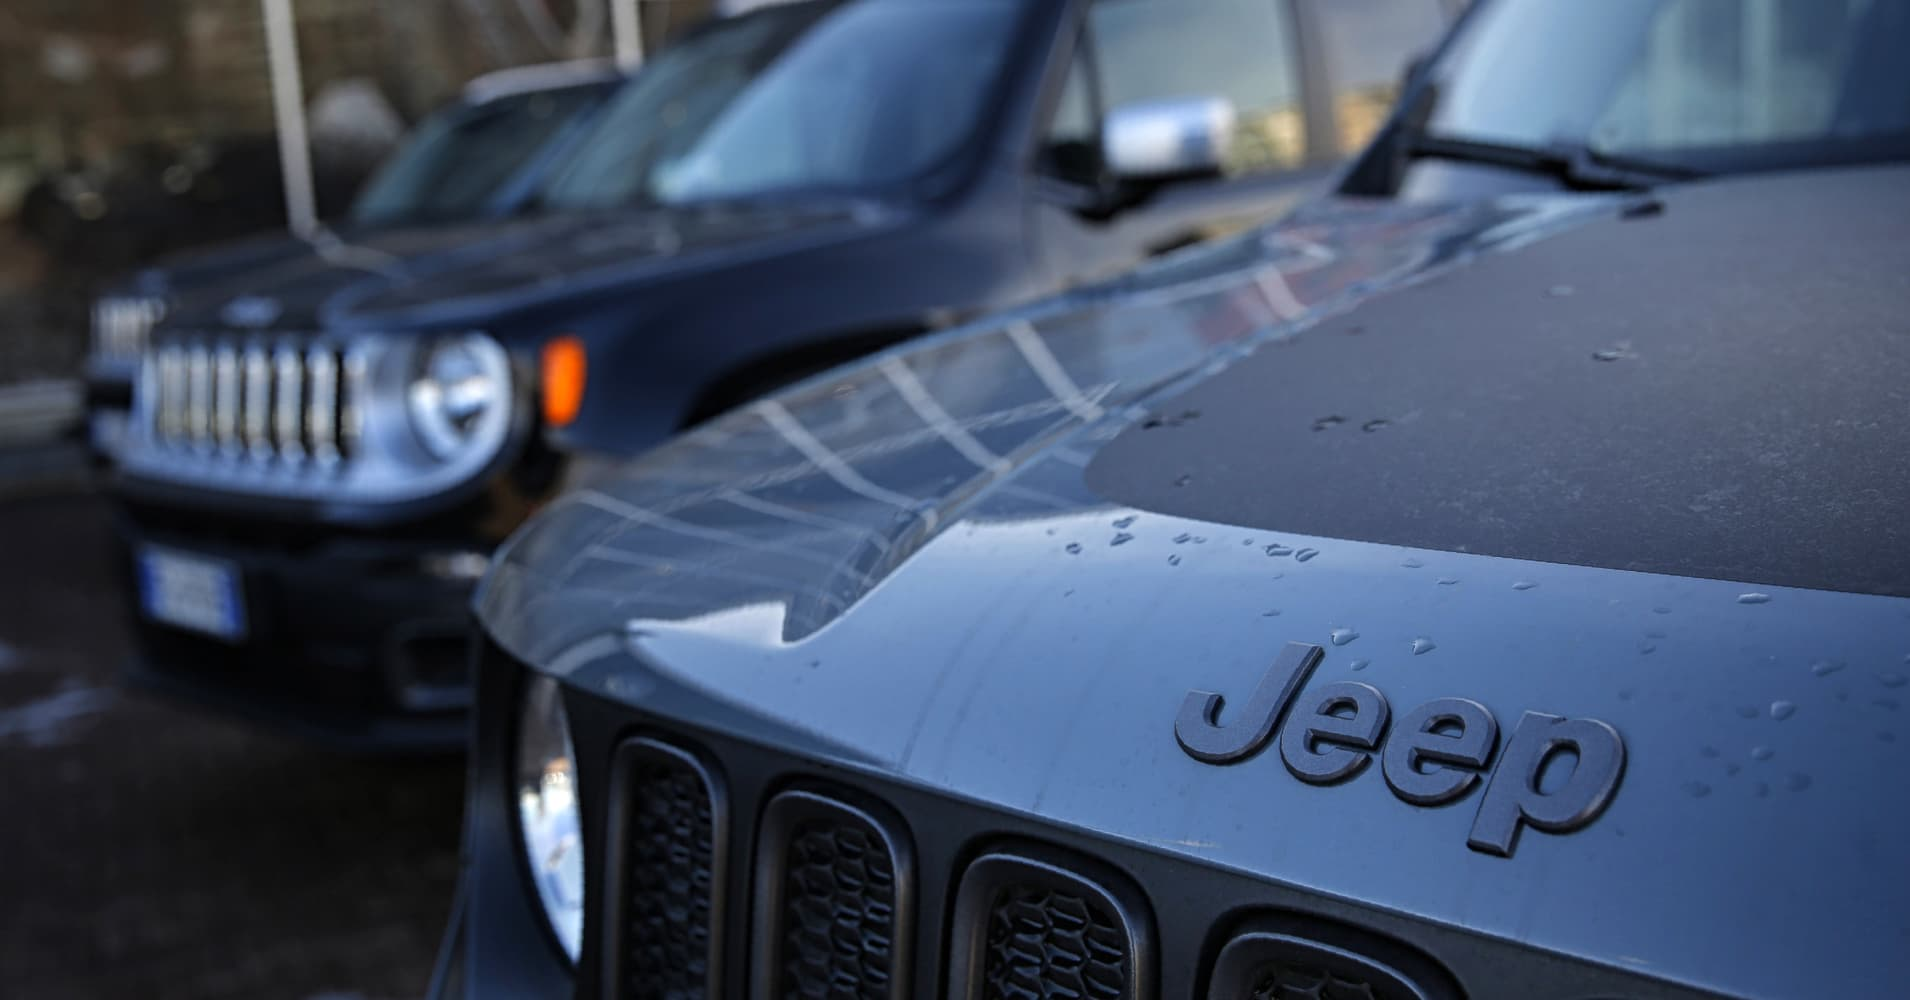 Italy says new tests find no defeat devices on Fiat Chrysler cars